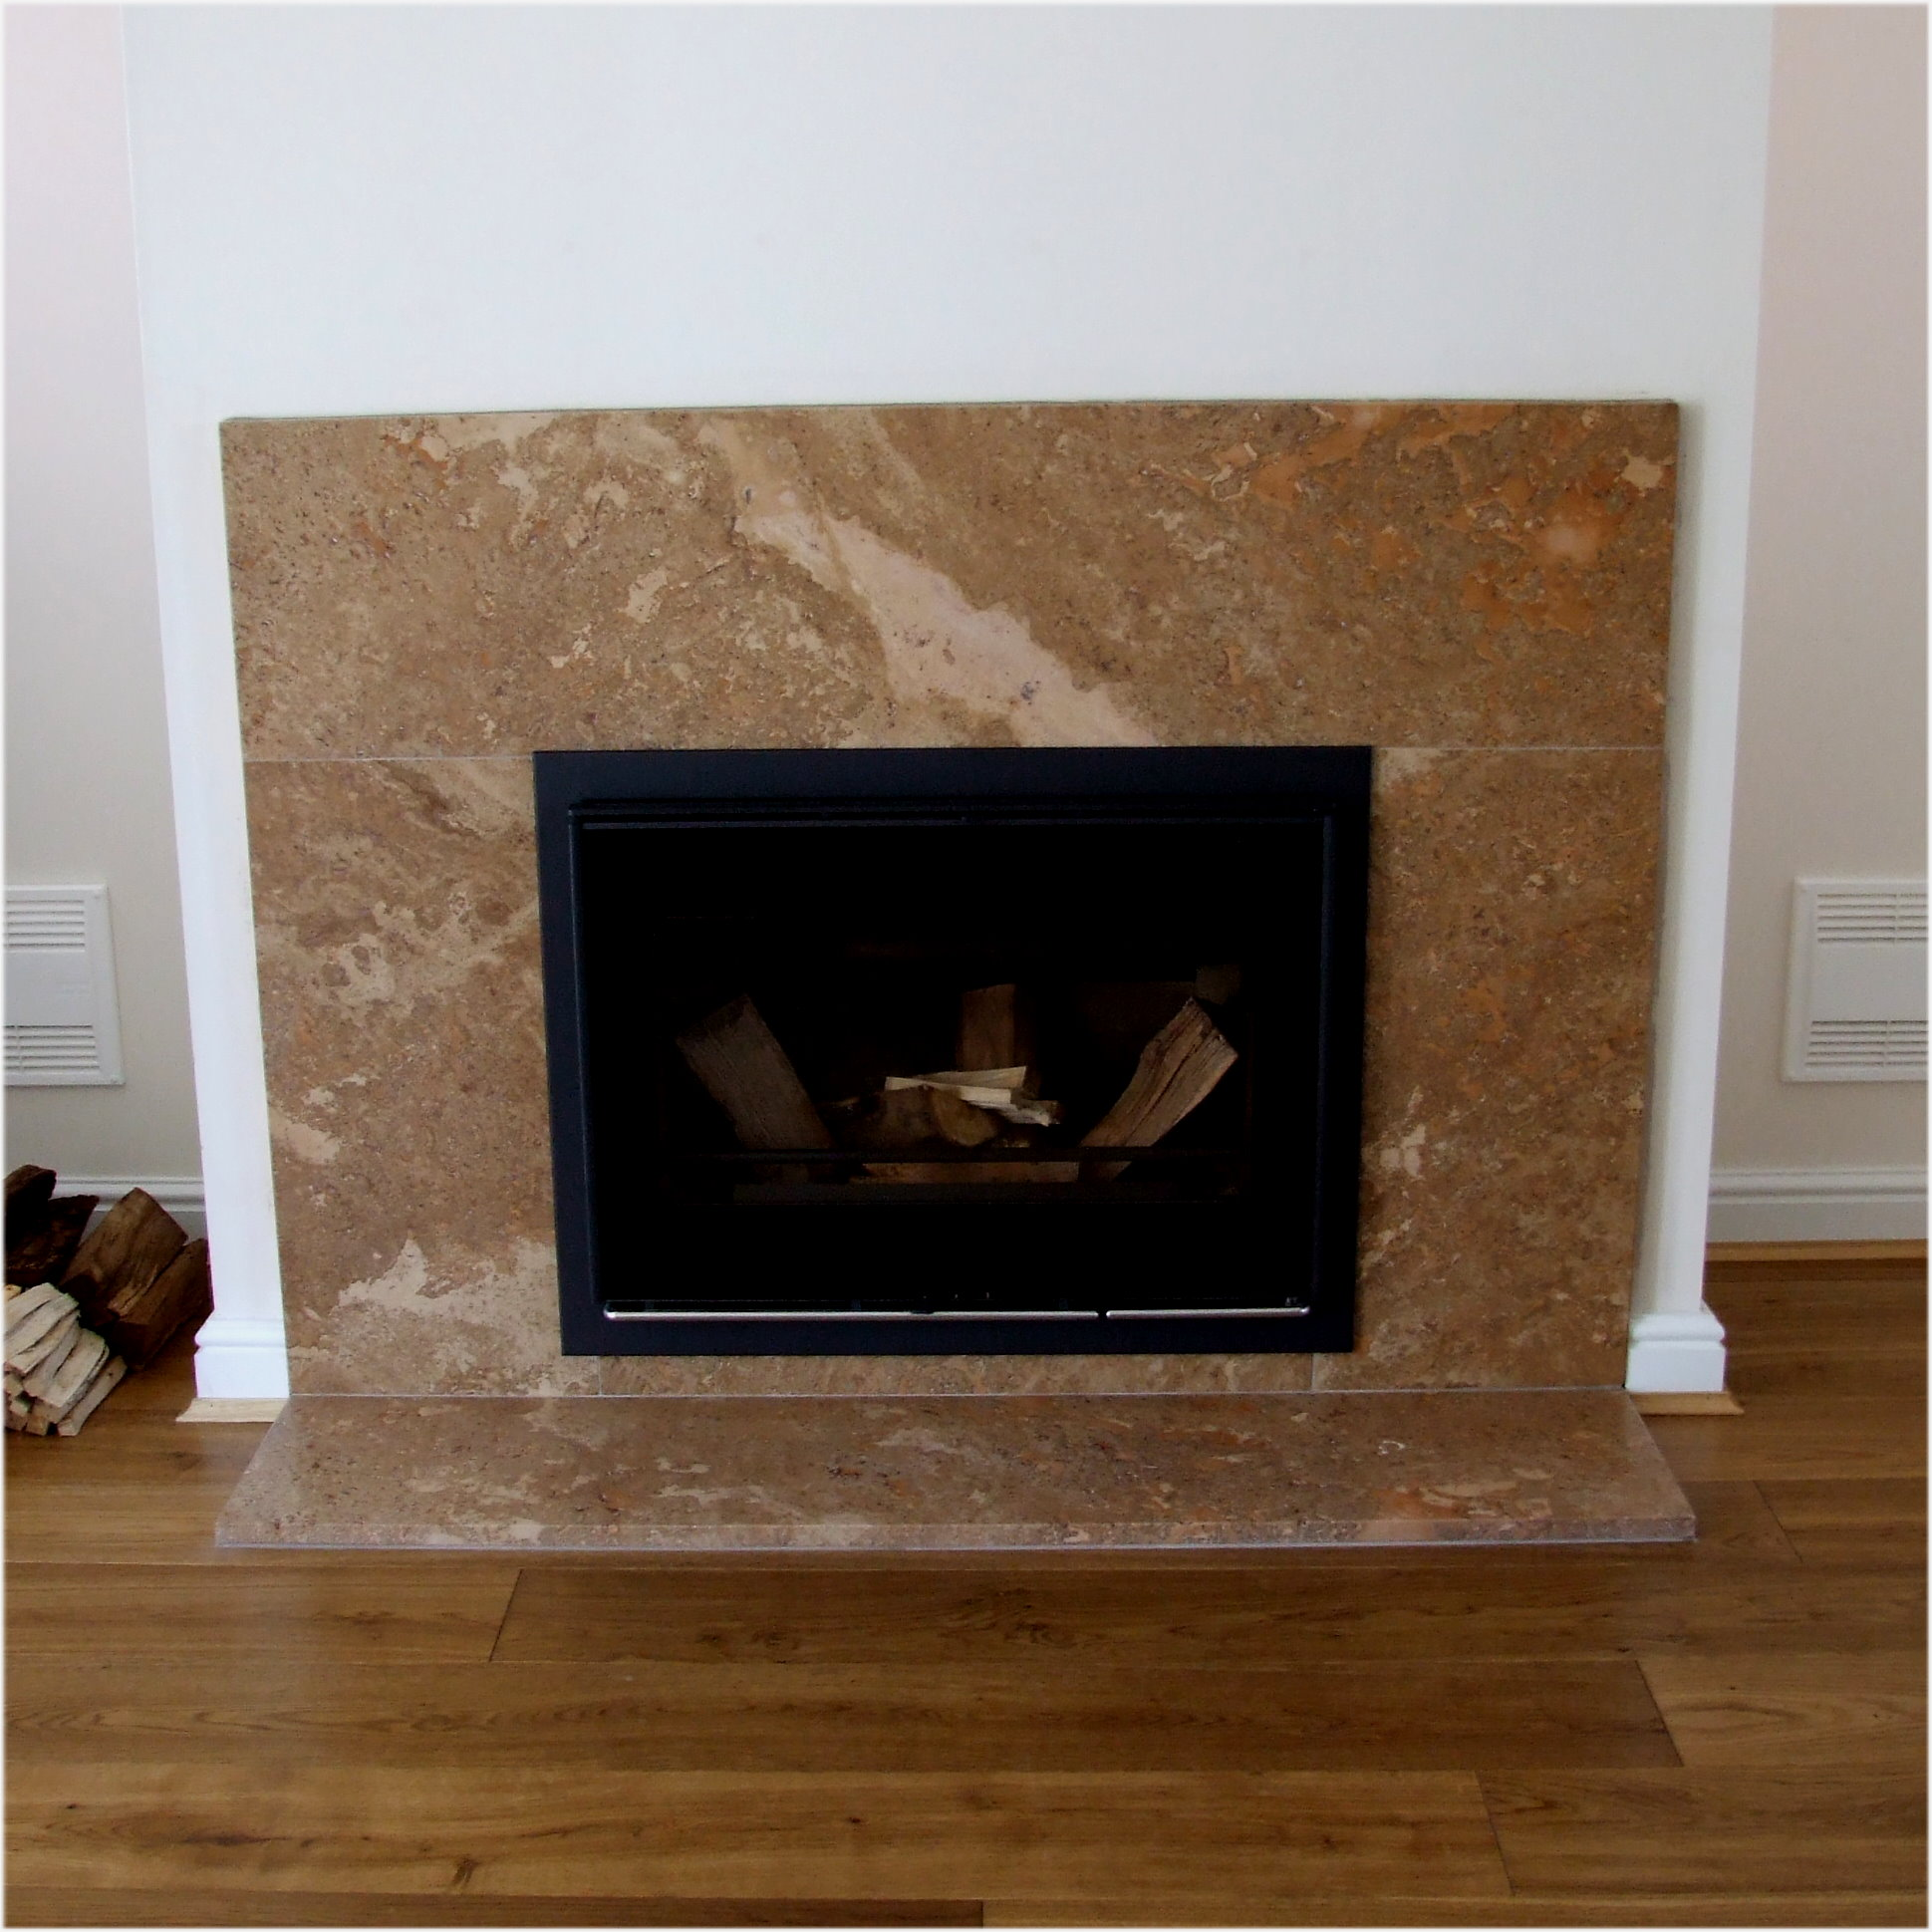 Why Not To Set The Bar For The Fireplace Hearth Stone Now